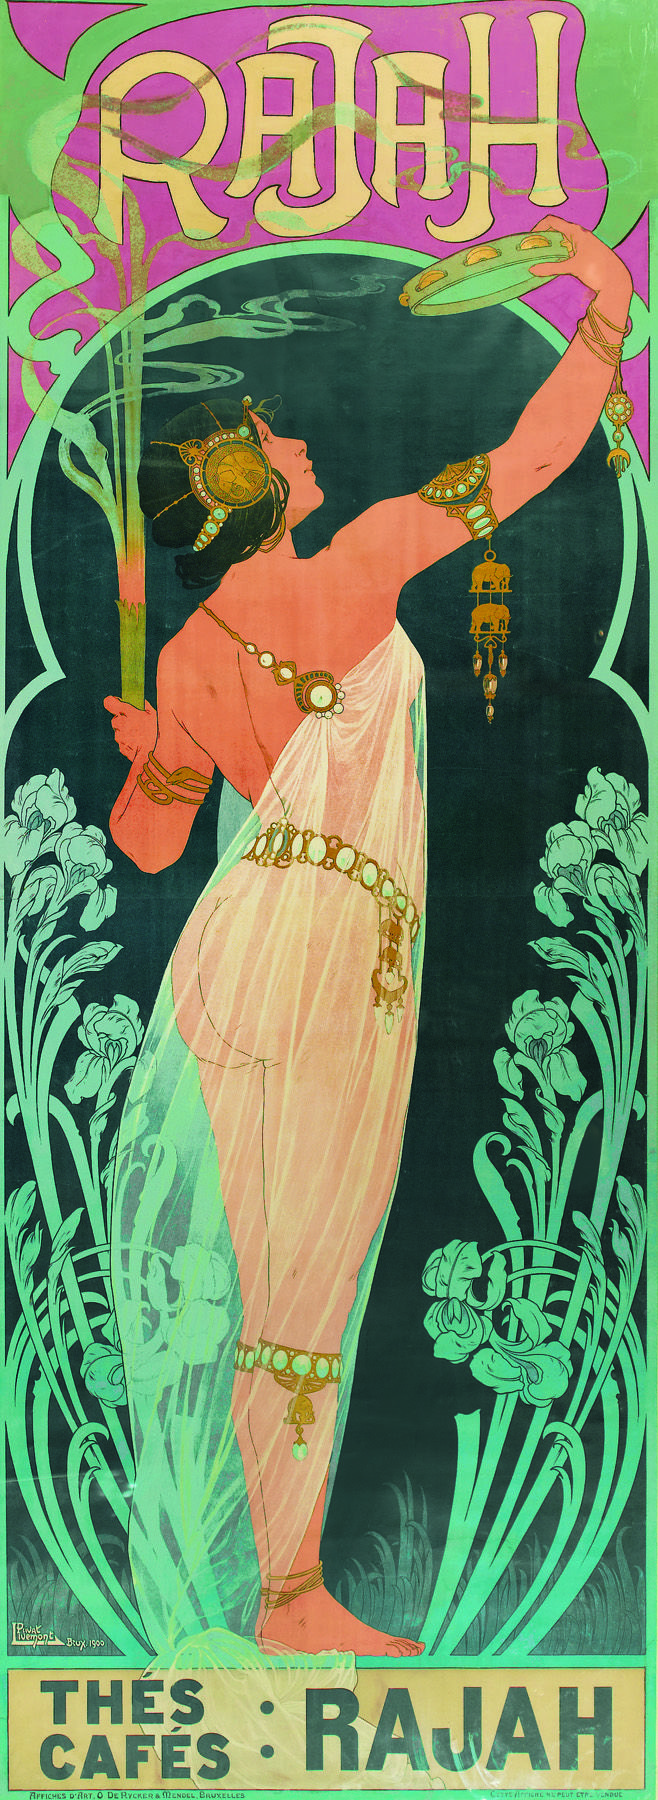 Poster design 1900 - Swann Auction Galleries The Mysterious Tall Rajah Poster Henri Privat Livemont S Rajah Is Extremely Scarce Only One Reference To The Poster Has Been